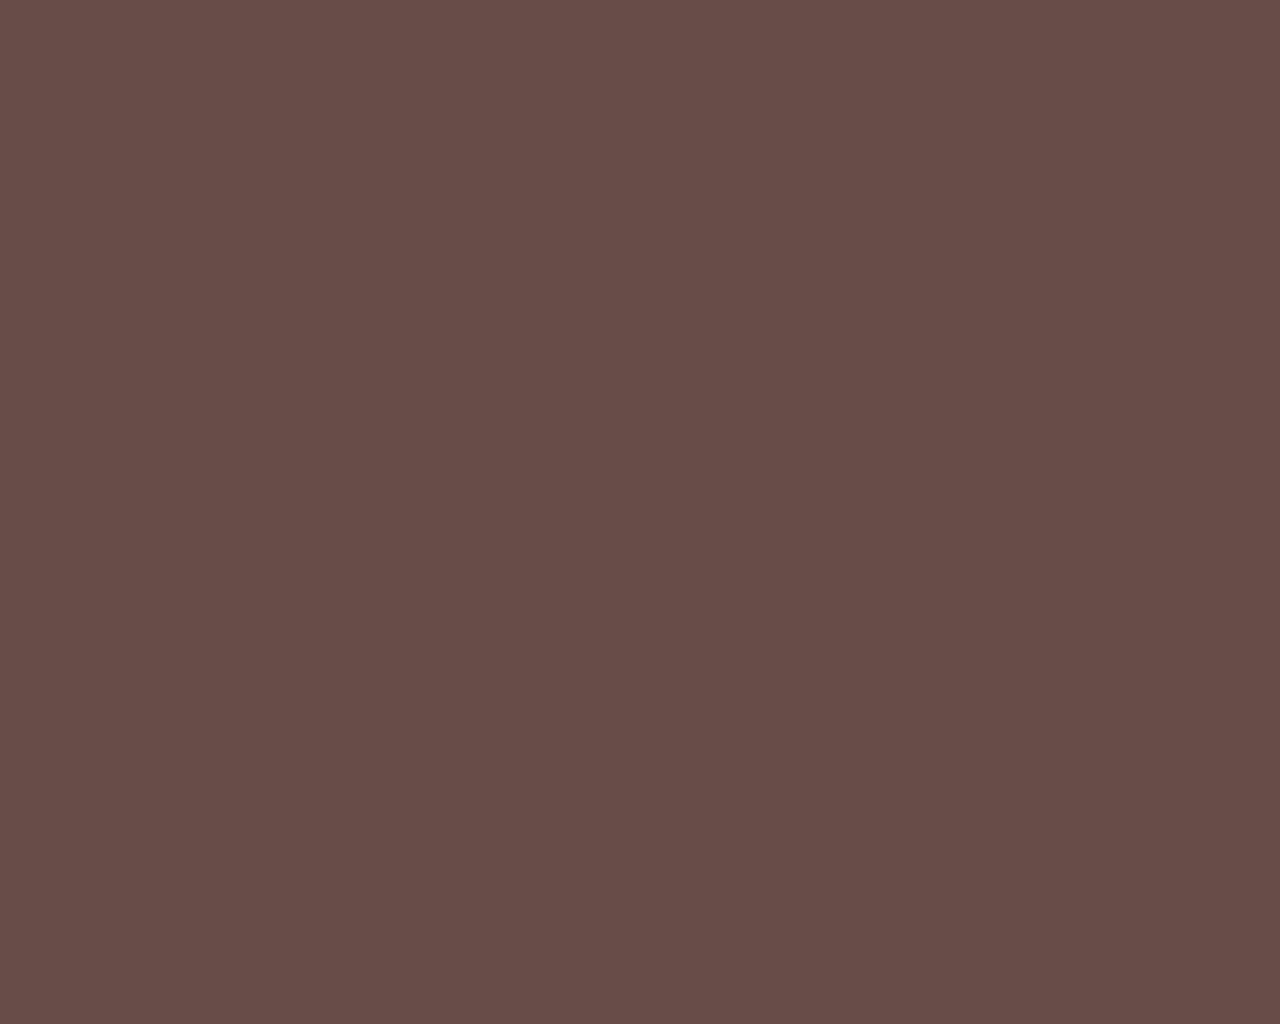 1280x1024 Medium Taupe Solid Color Background